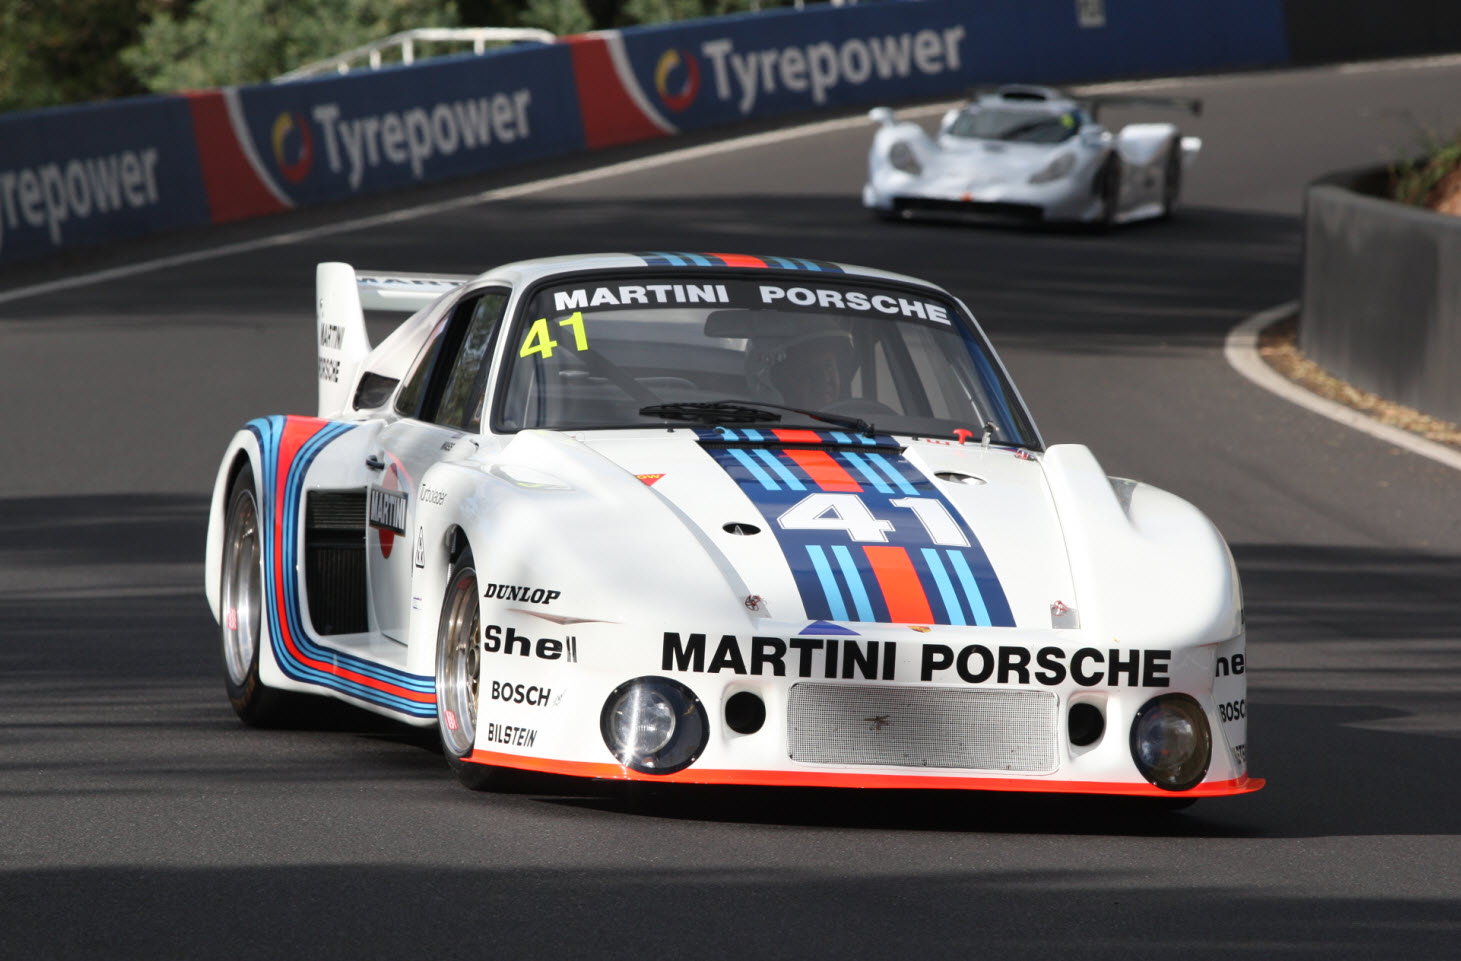 Porsche 935 coupe. Submitted by retromotor on September 22, 2010No Comment